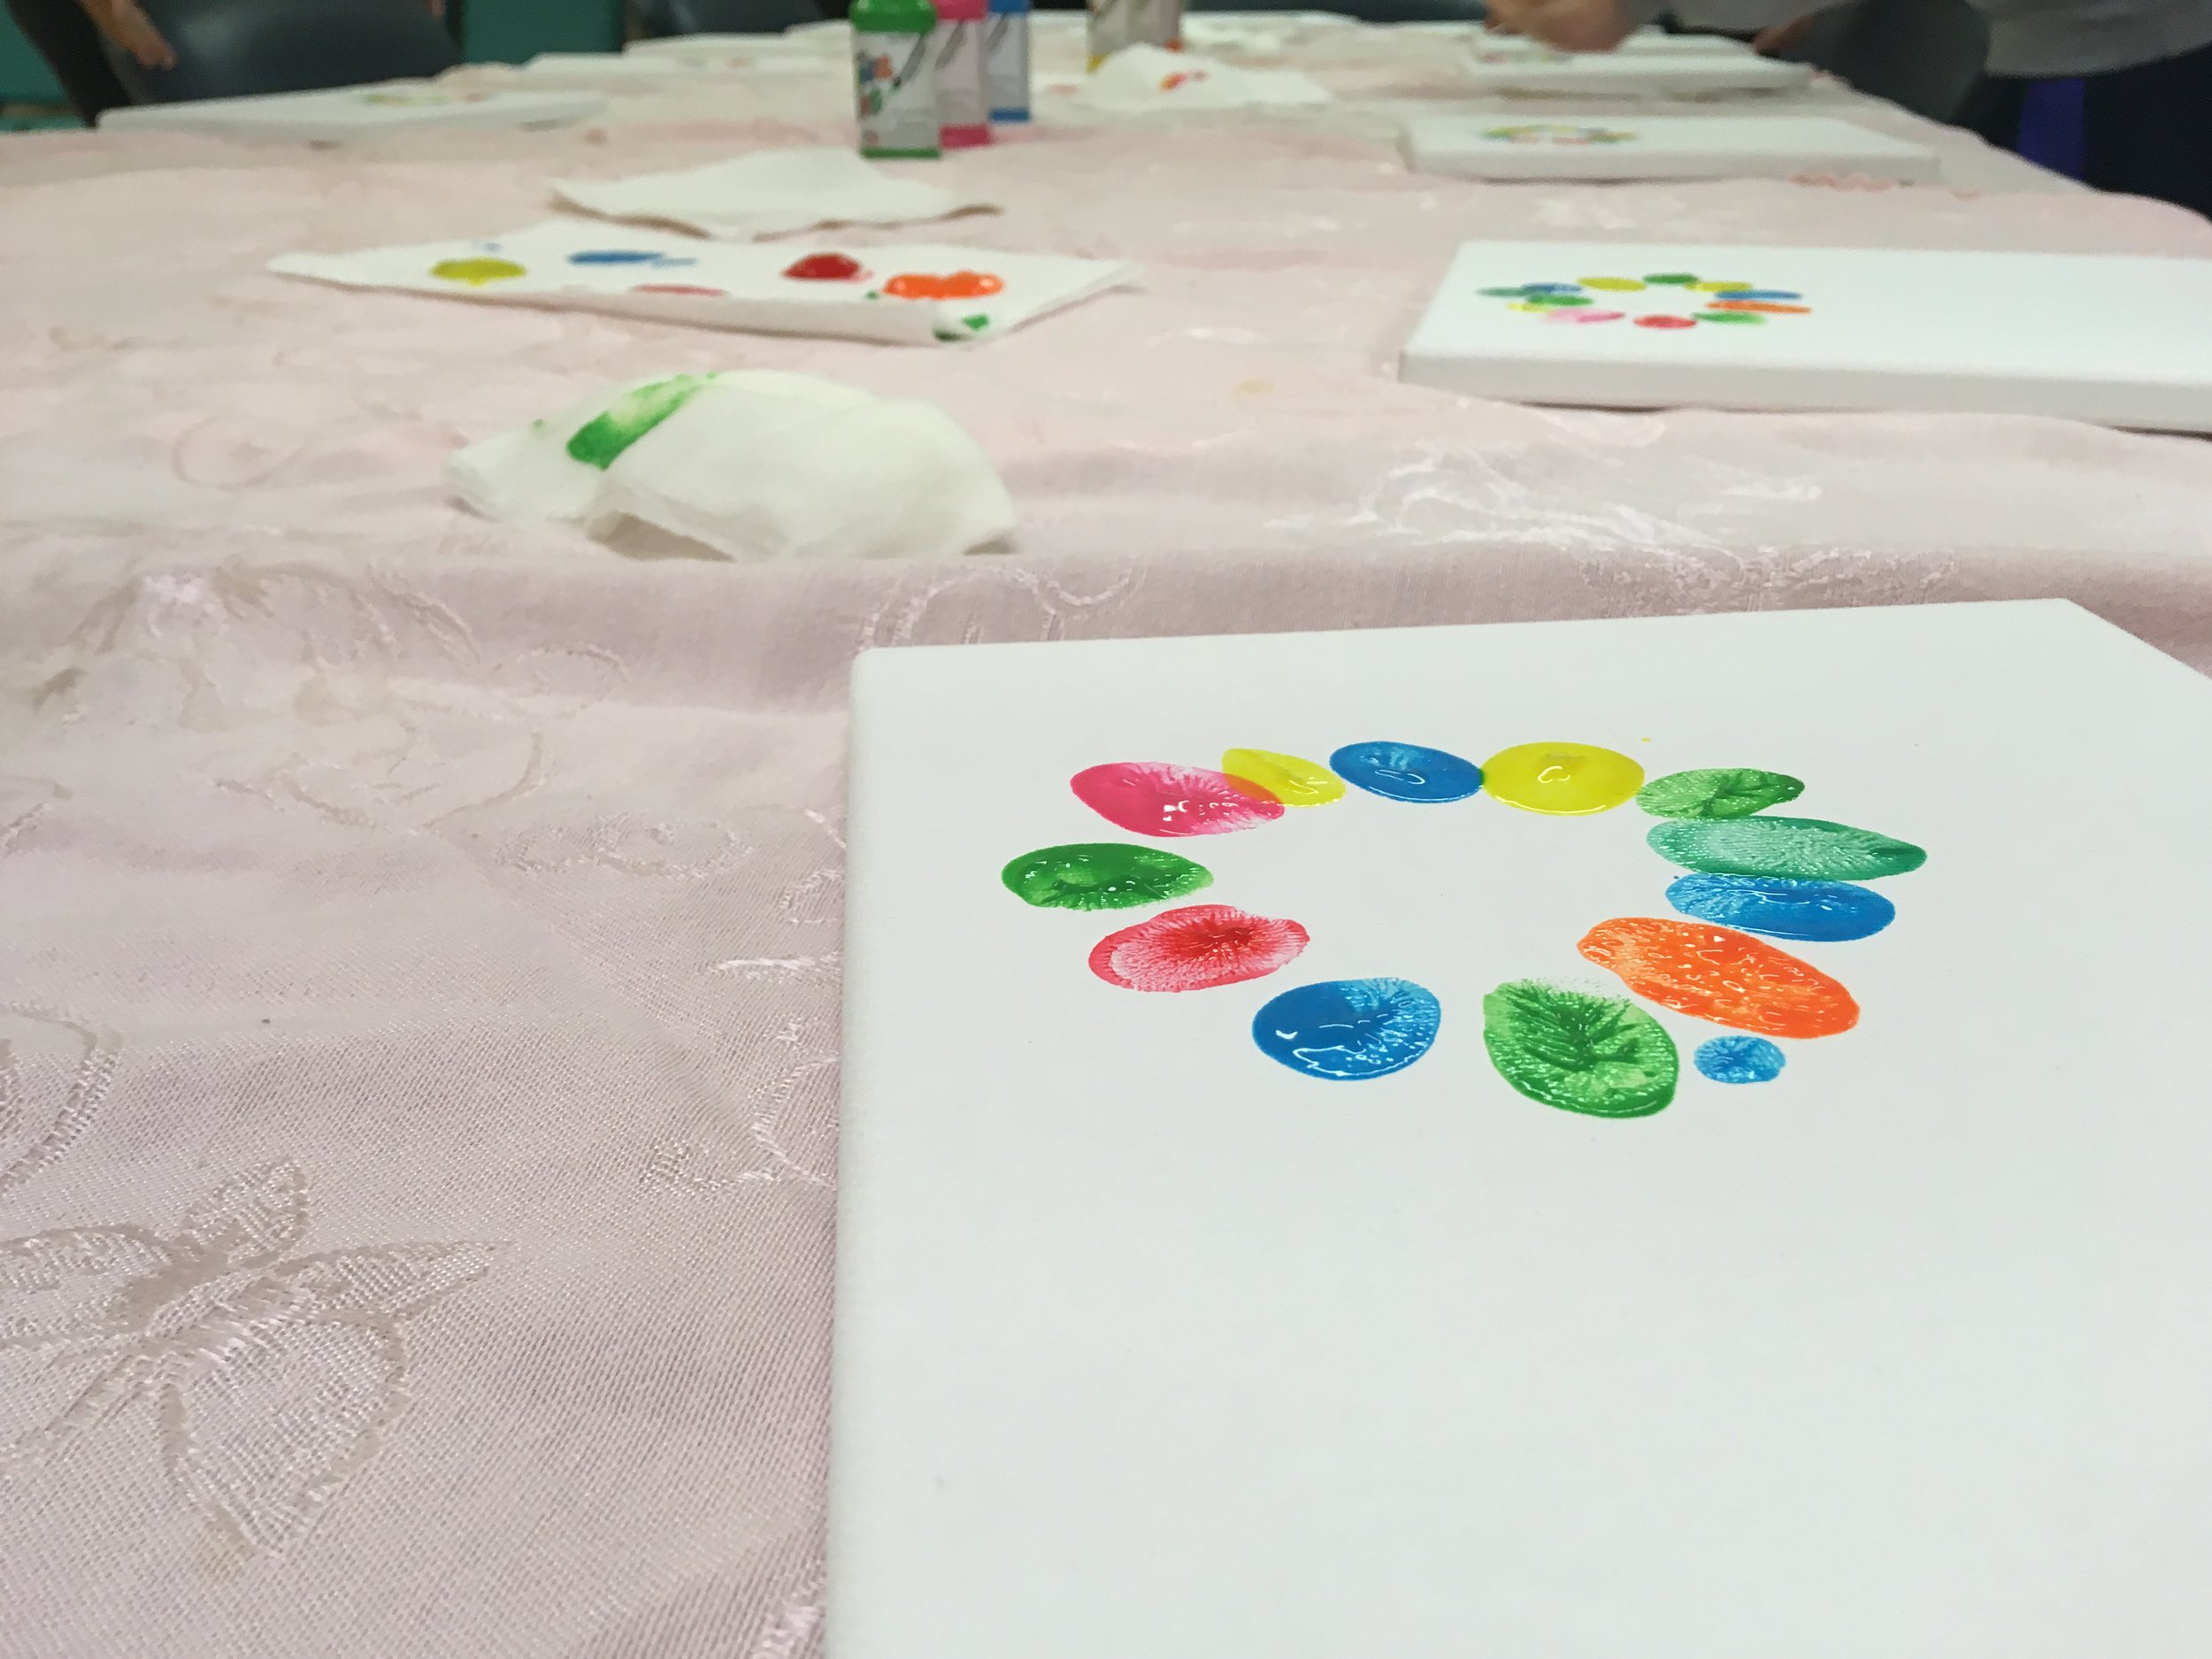 Step 2 - Once everyone has finished fingerprinting, you can personalize your canvas!